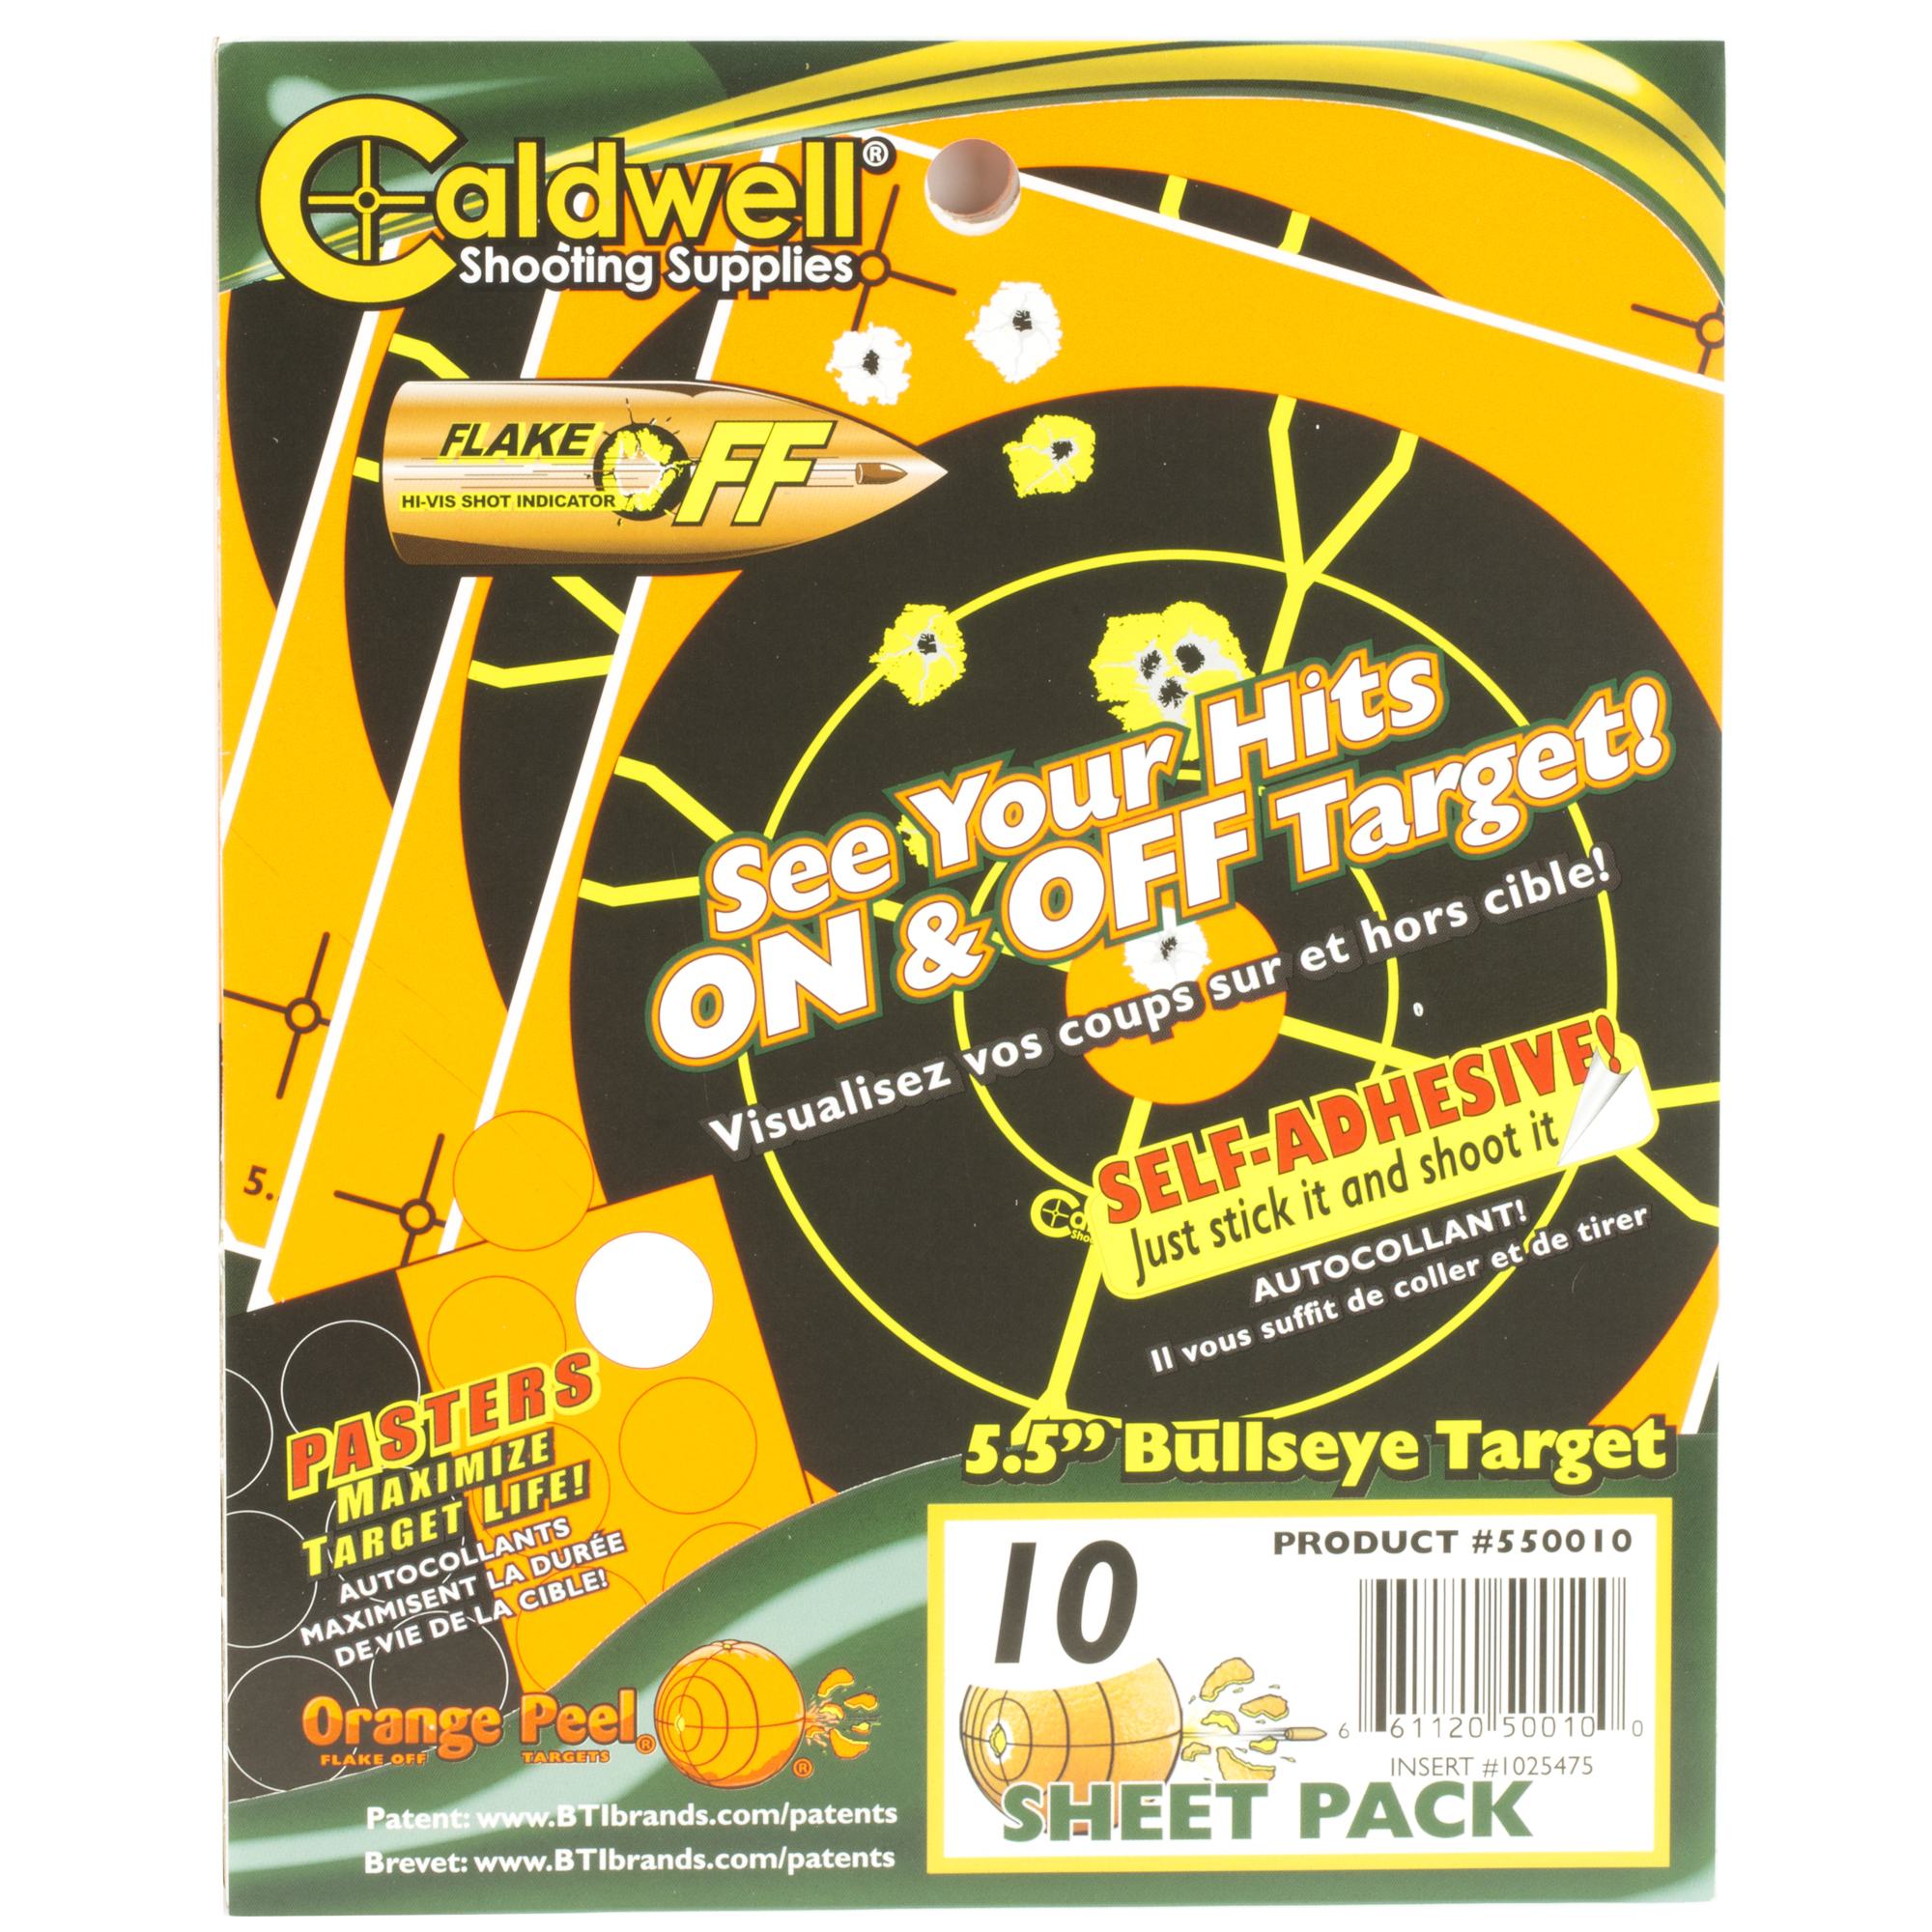 """Get on target with Orange Peel(R) Targets by Caldwell(R)! Orange Peels let you see hits ON and OFF the target with dual-color flake-off technology that makes your hits look like colorful explosions. If your shot happens to miss the bullseye"""" you will know exactly where your bullet strayed. instantly. The orange background and black target make target acquisition through the scope easy"""" even at long distances."""